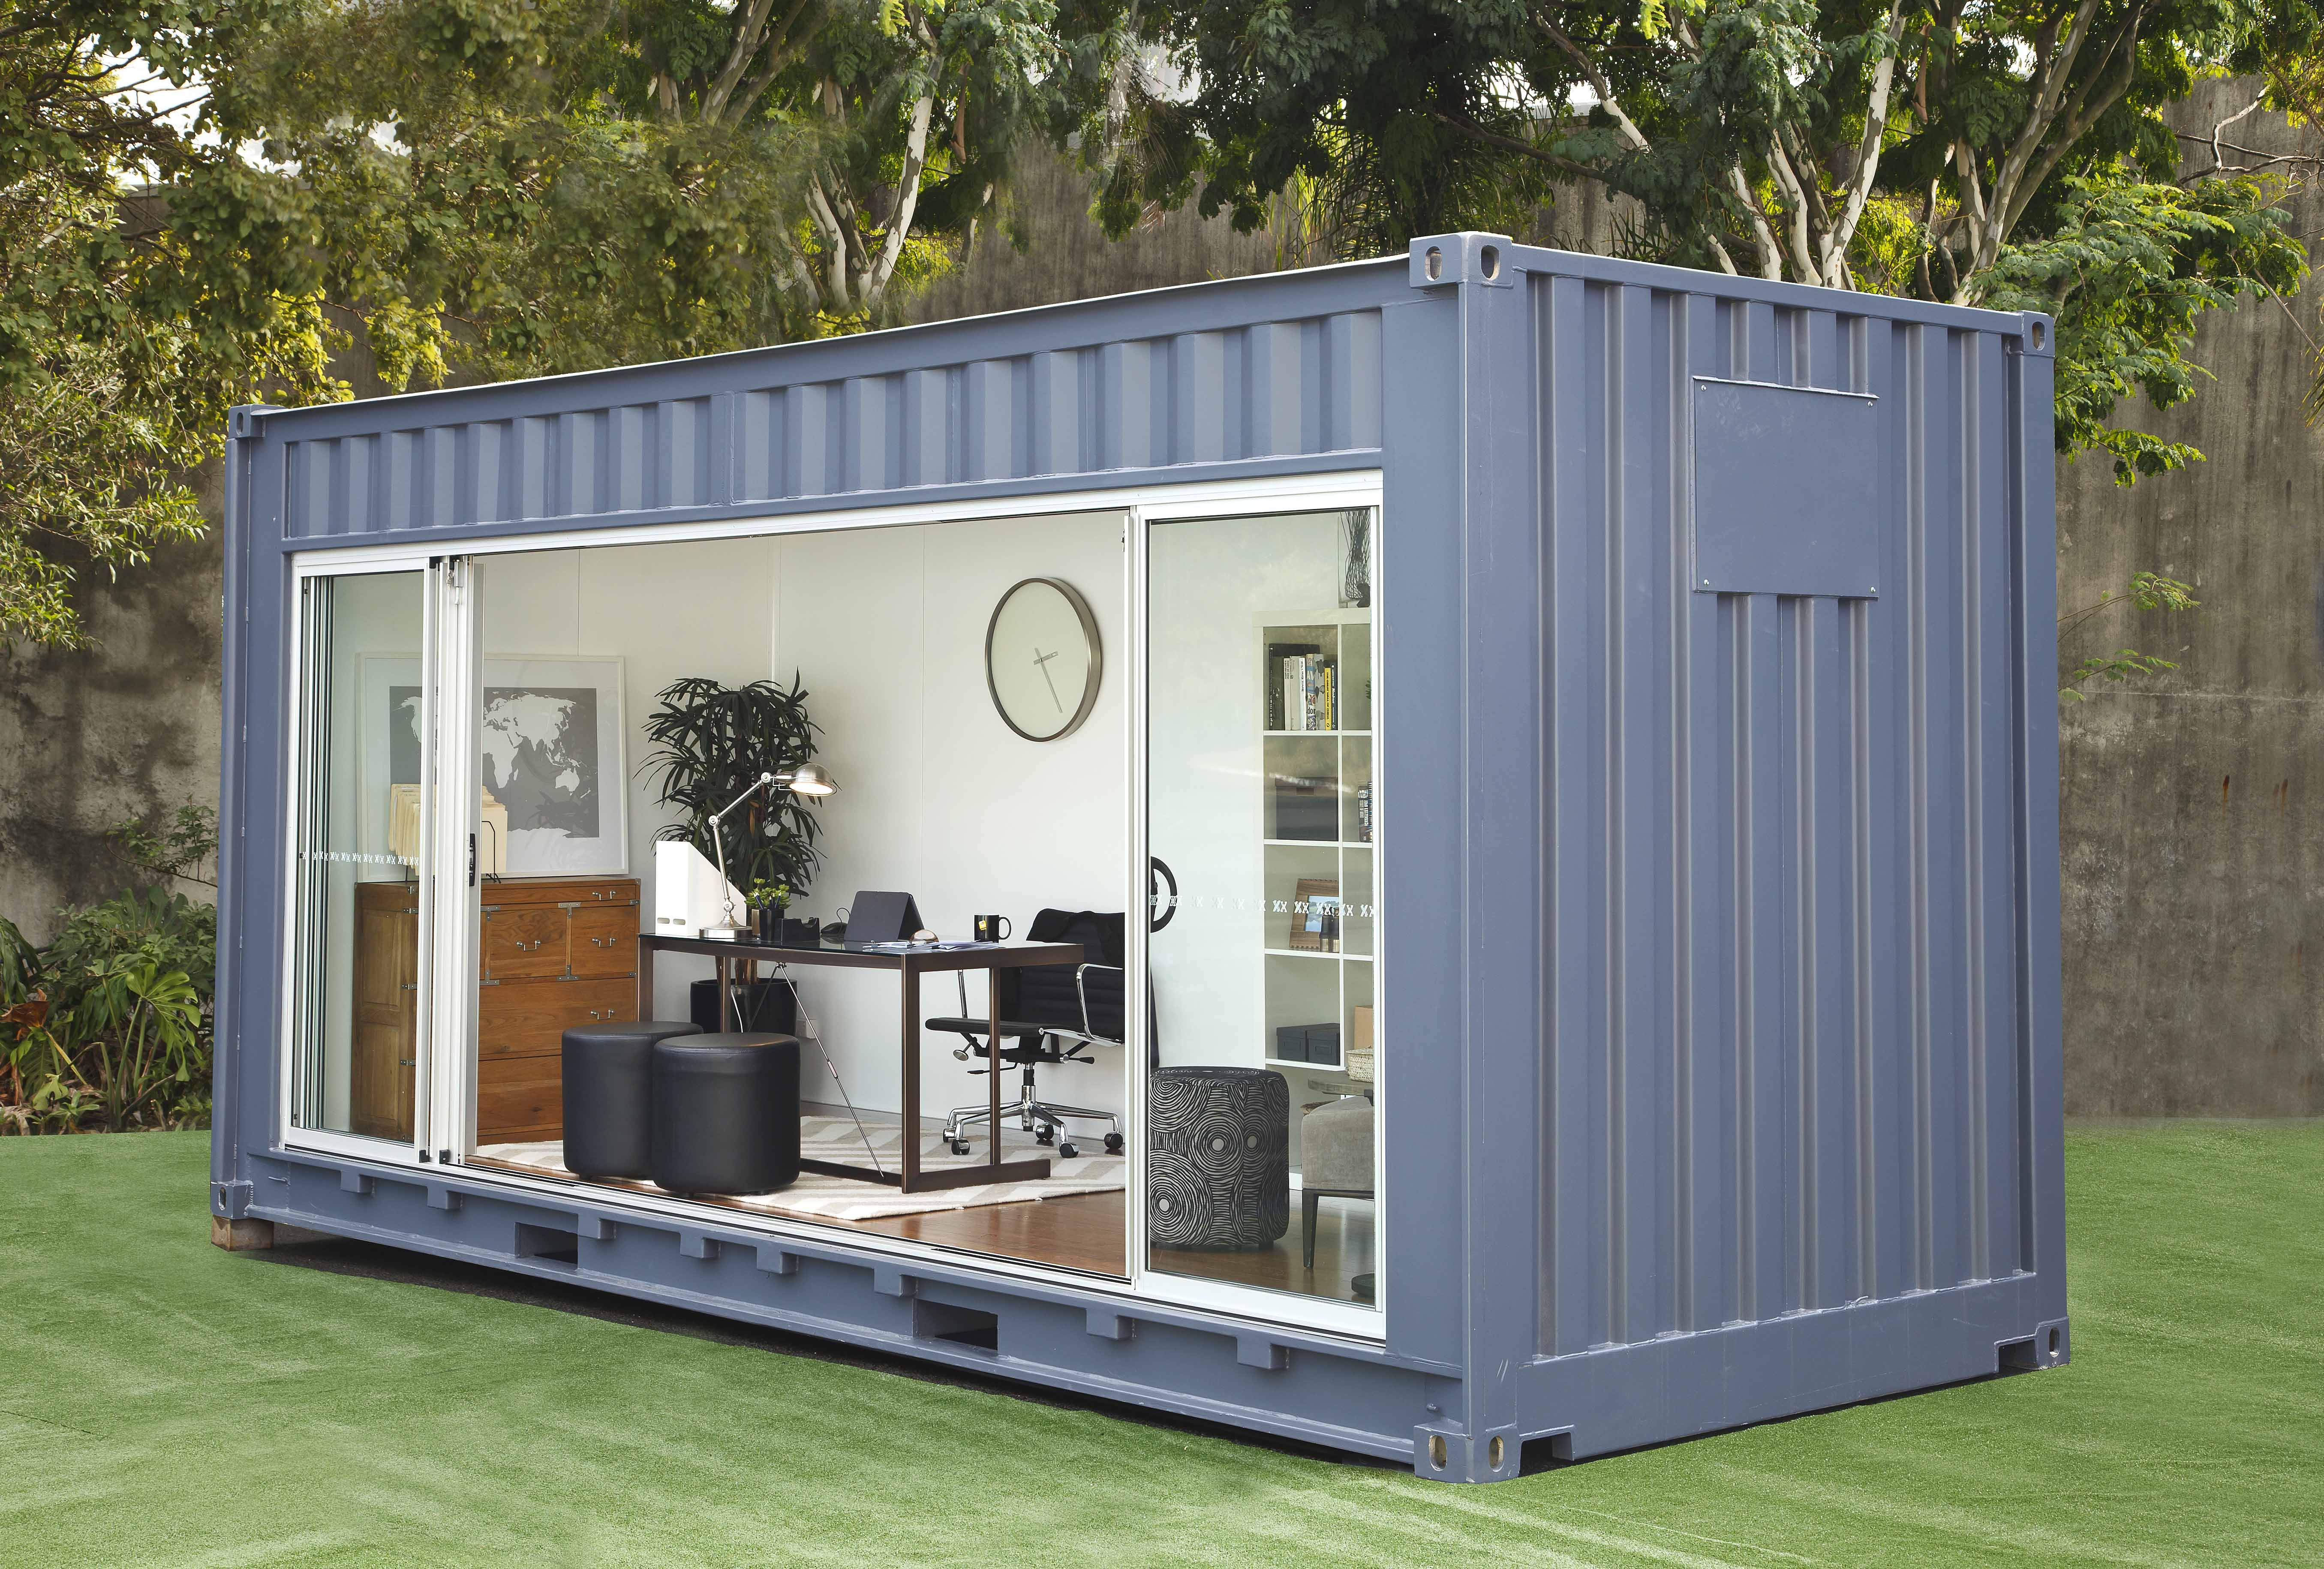 Royal Wolf launches 'Outdoor Room' lifestyle range - Shipping containers  you can live in!